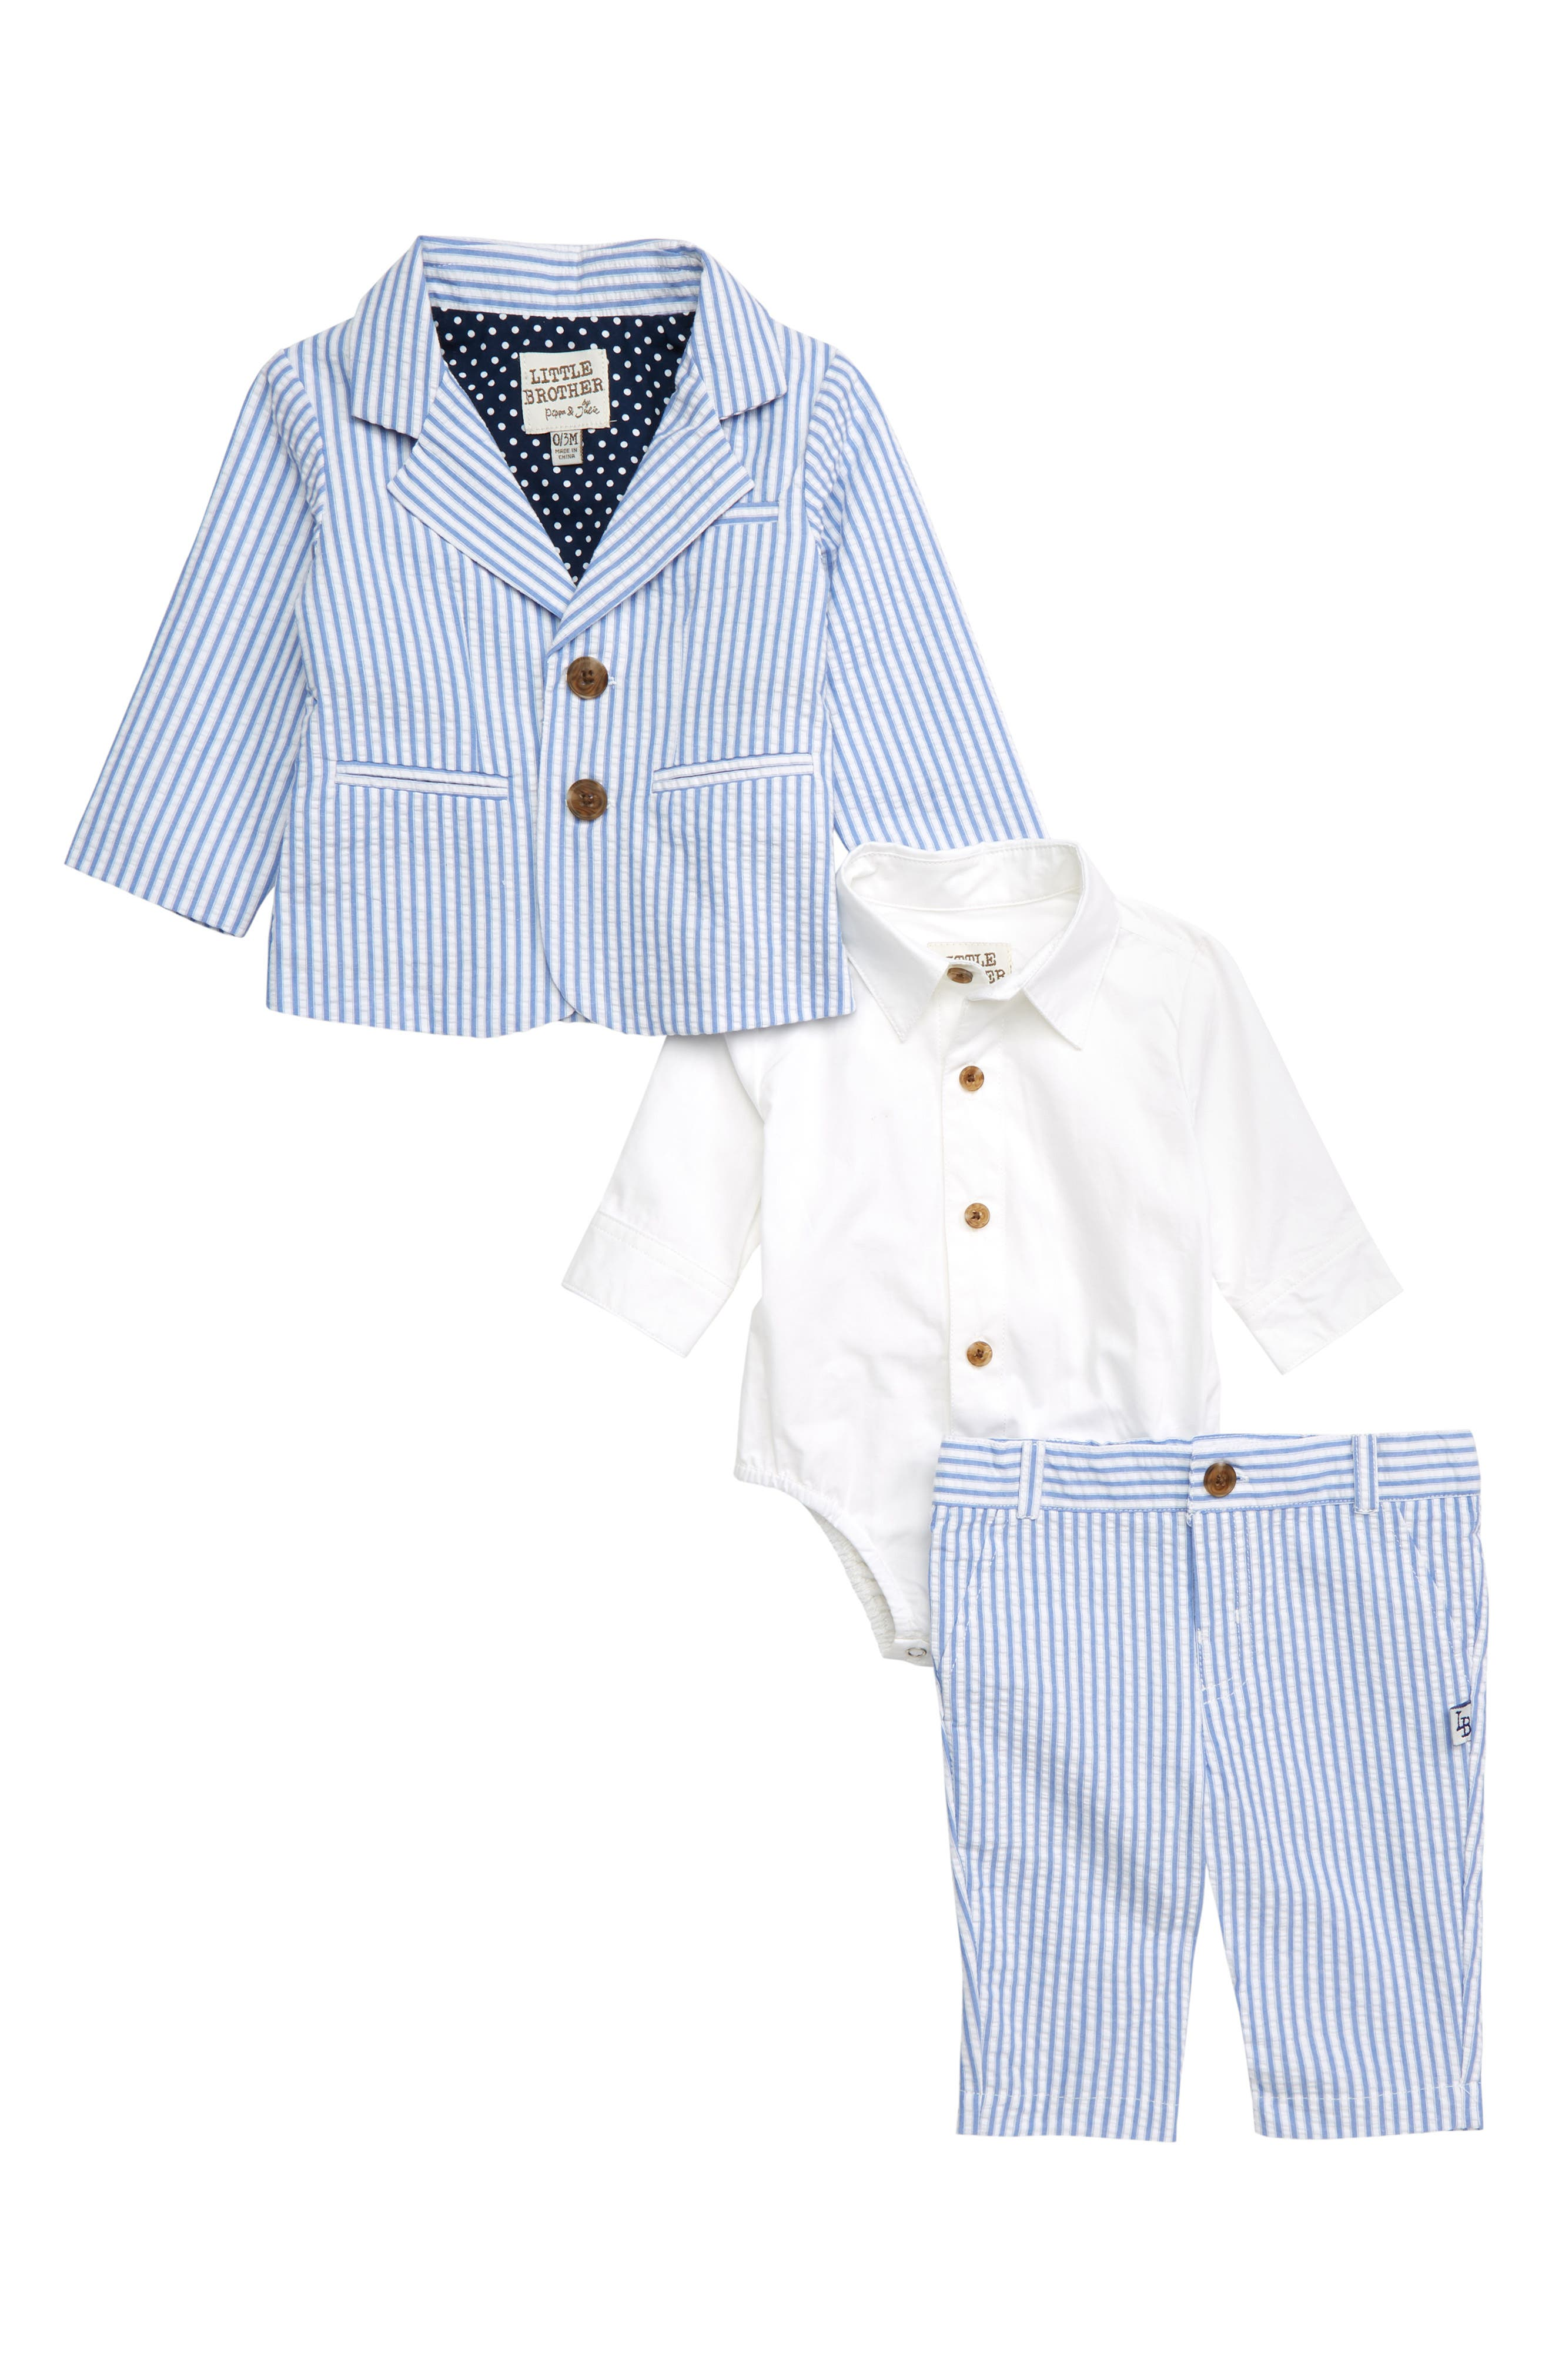 LITTLE BROTHER BY PIPPA & JULIE, Seersucker Suit Set, Main thumbnail 1, color, BLUE/ WHITE